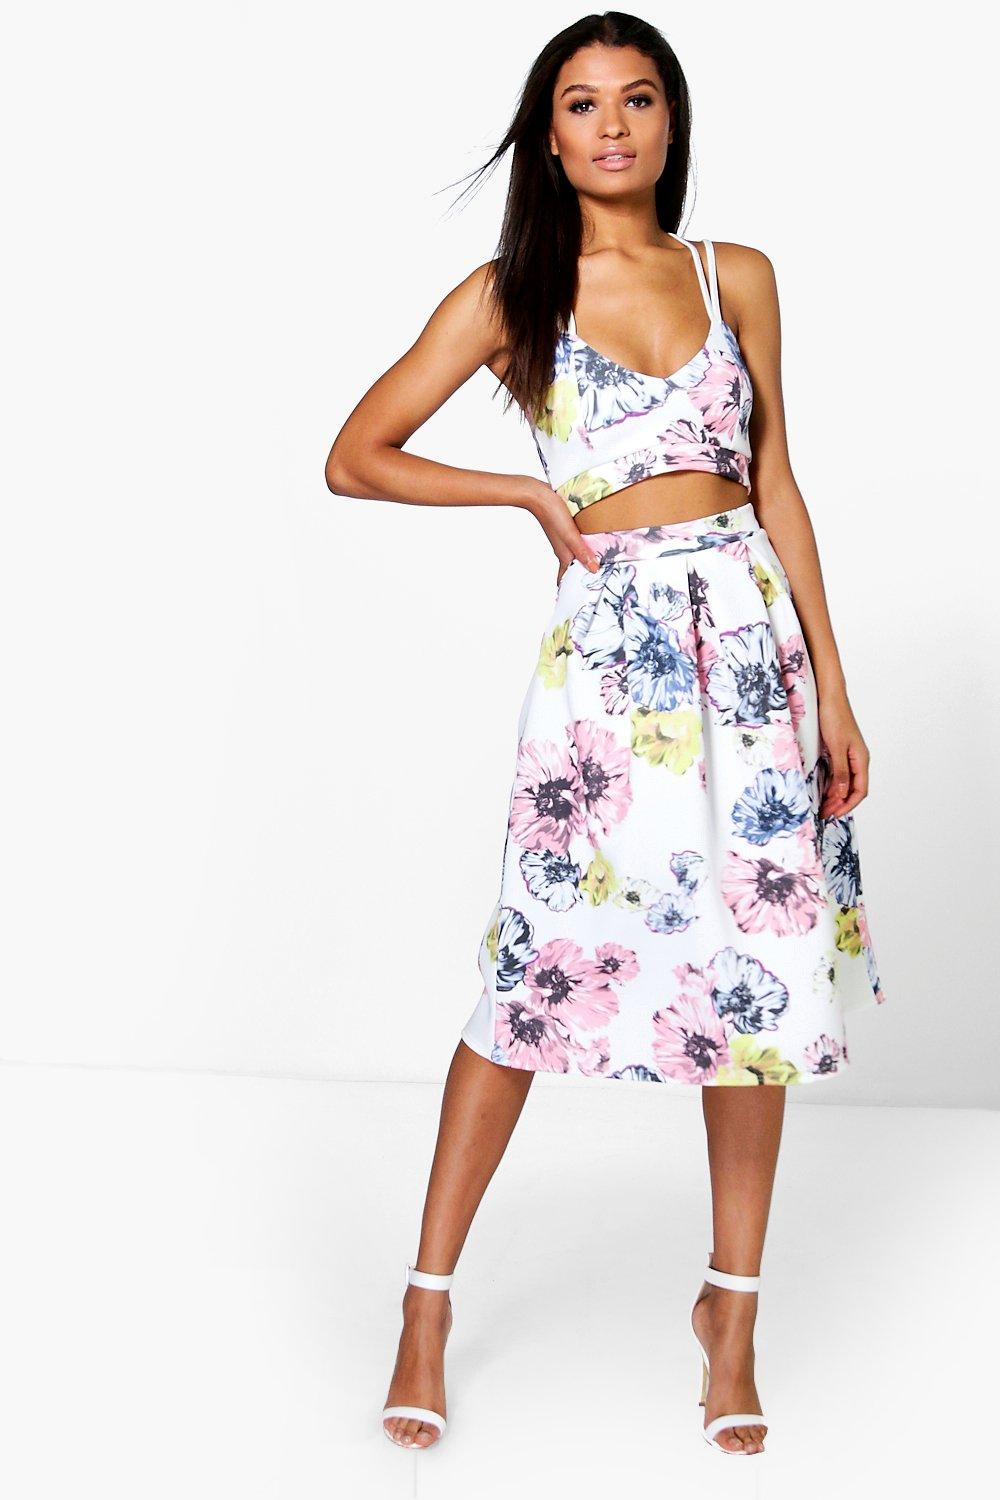 Sally Floral Print Top And Midi Skirt Co-Ord